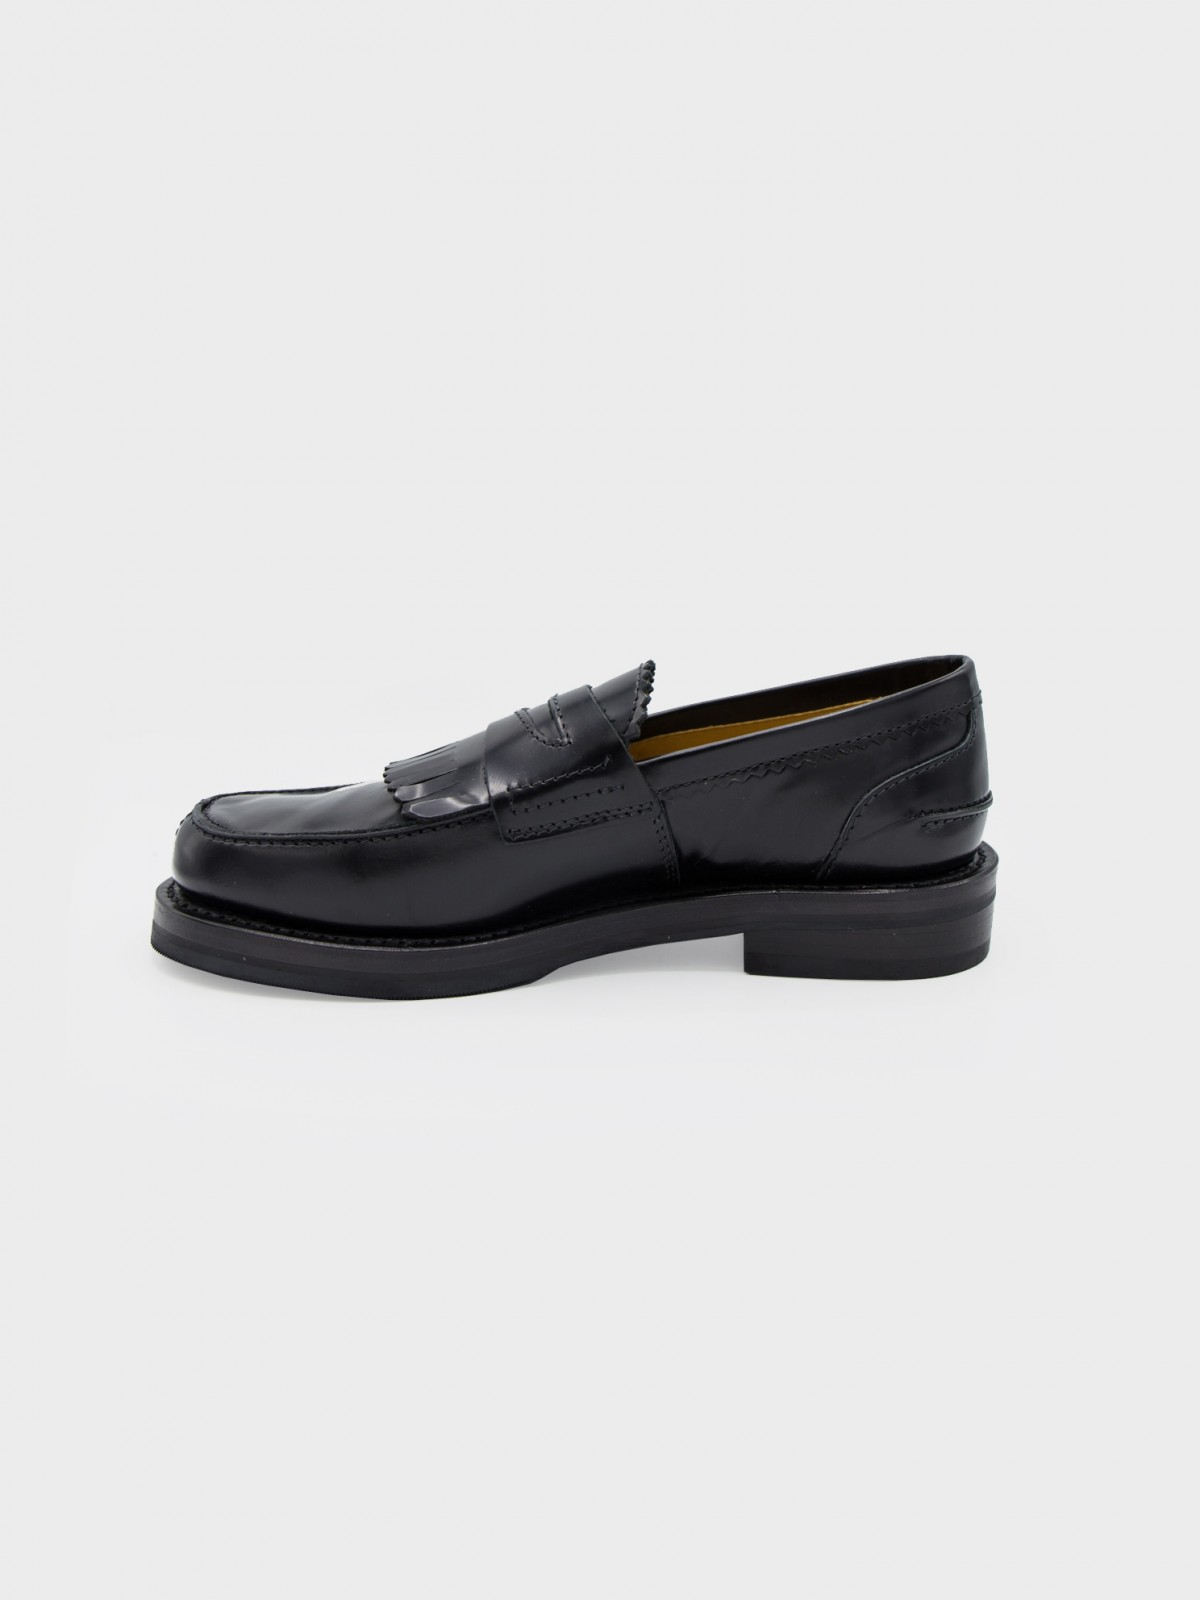 Our Legacy Loafer in Black